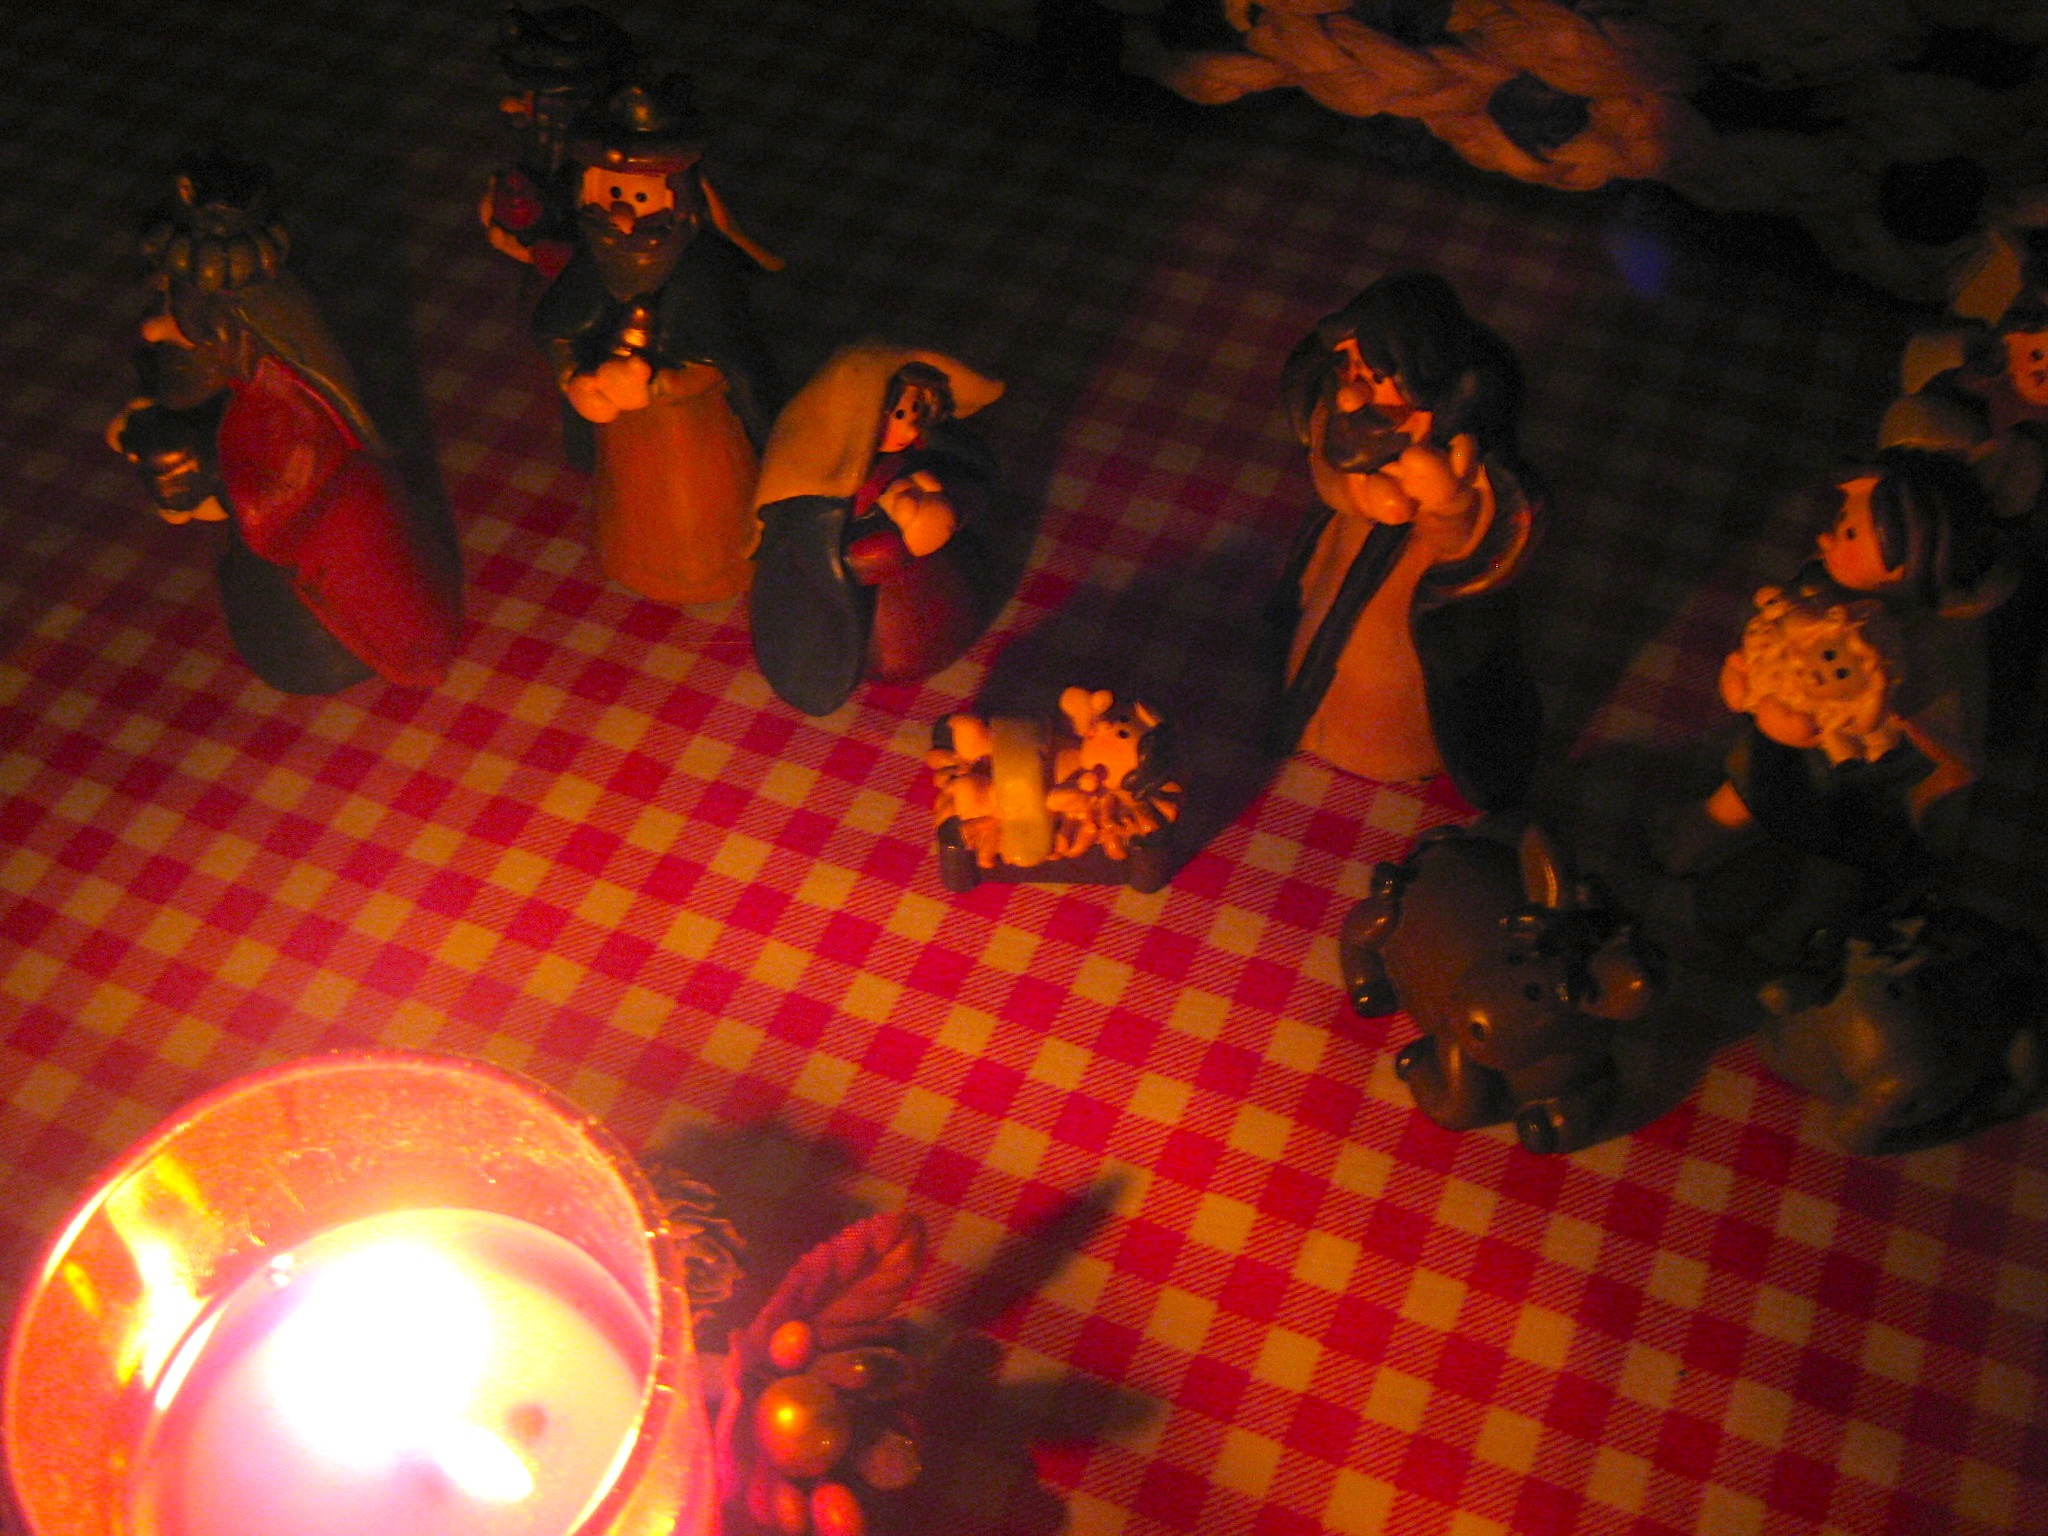 Nativity by candlelight